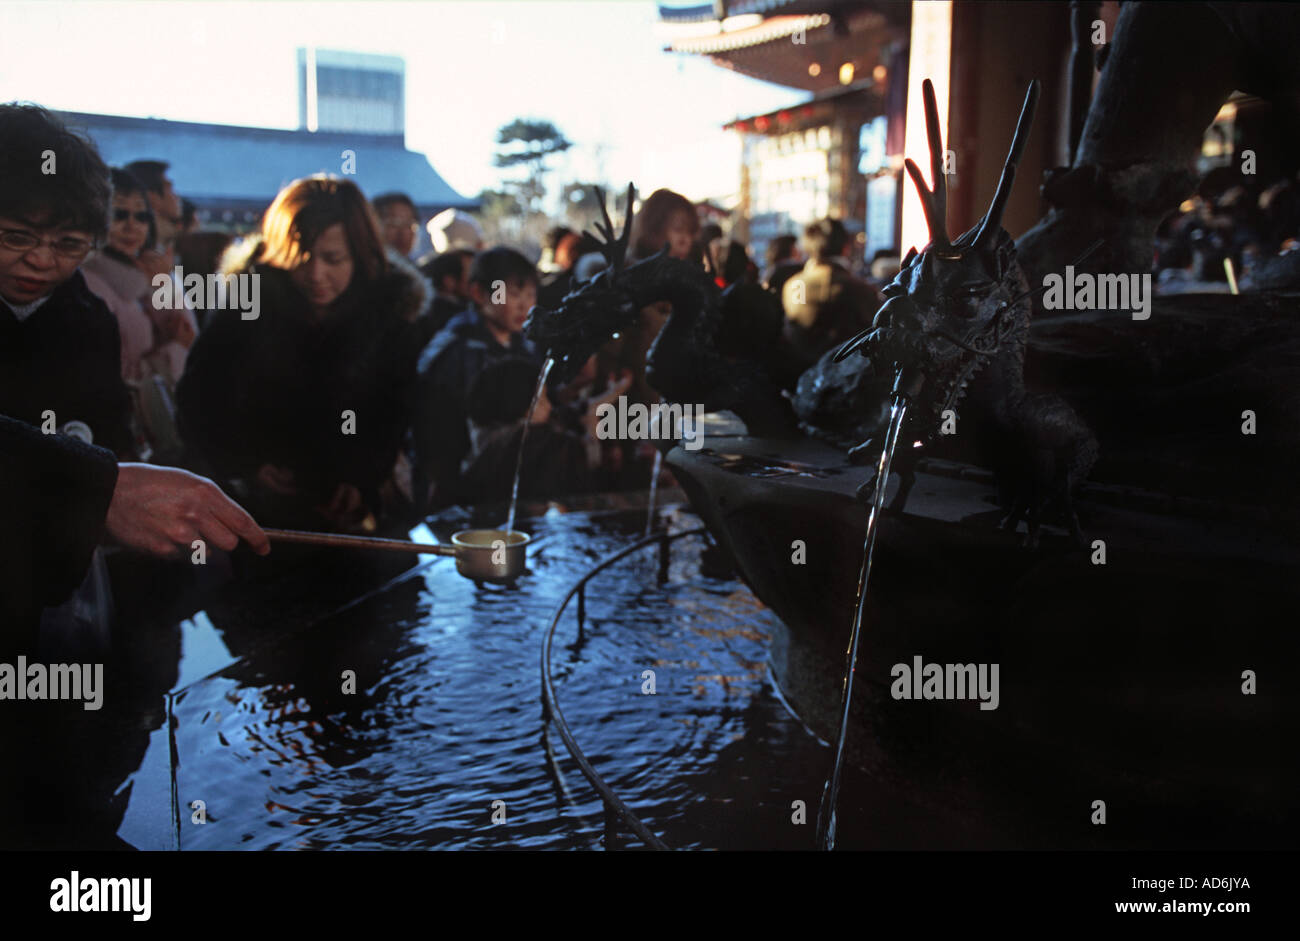 Cleansing hands in advance of prayers for New Year at The Sensoji Kannon Temple Tokyo Japan - Stock Image